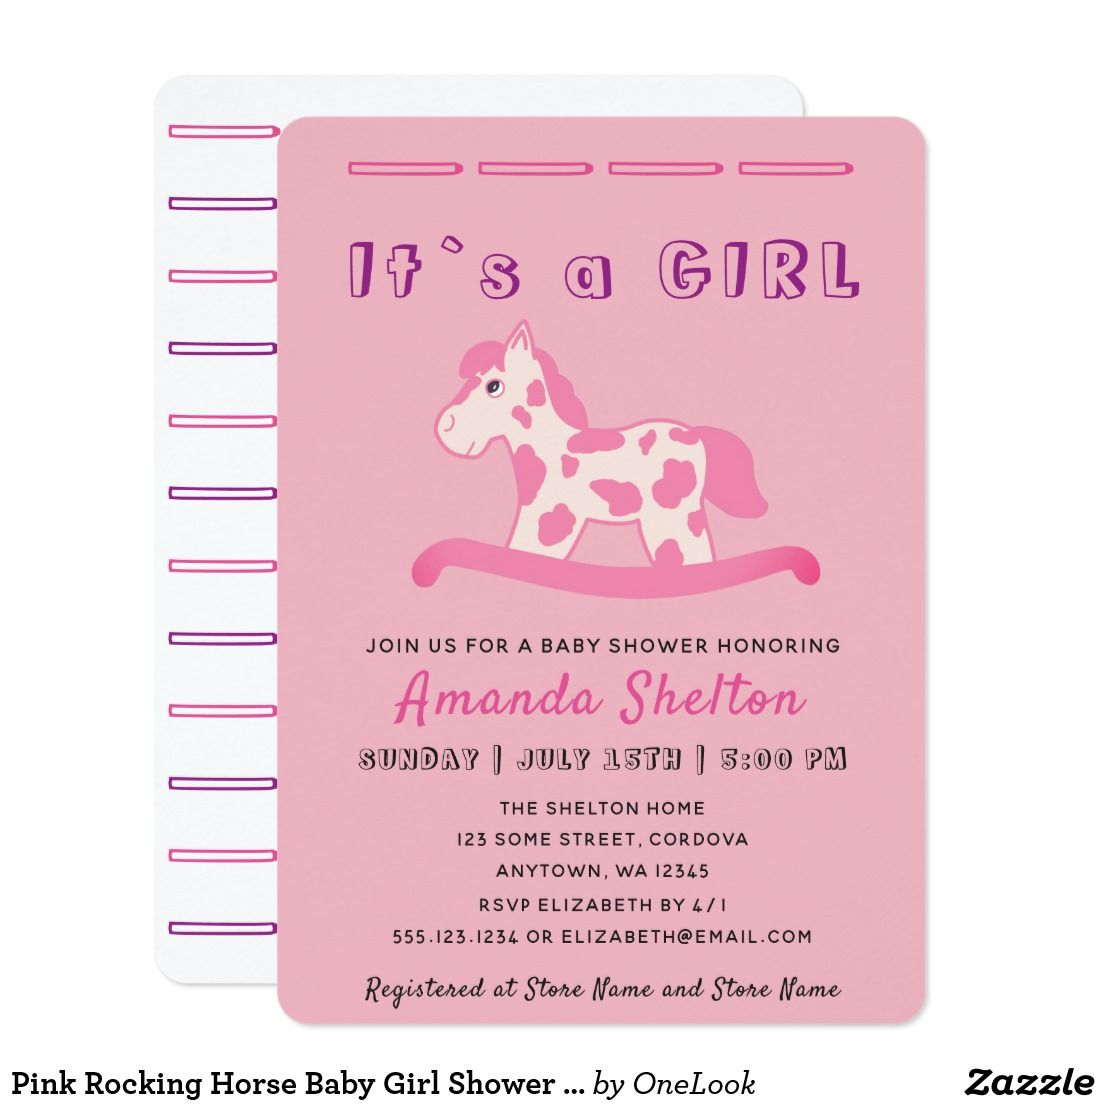 Pink Rocking Horse Baby Girl Shower Invitation | Baby girl shower ...